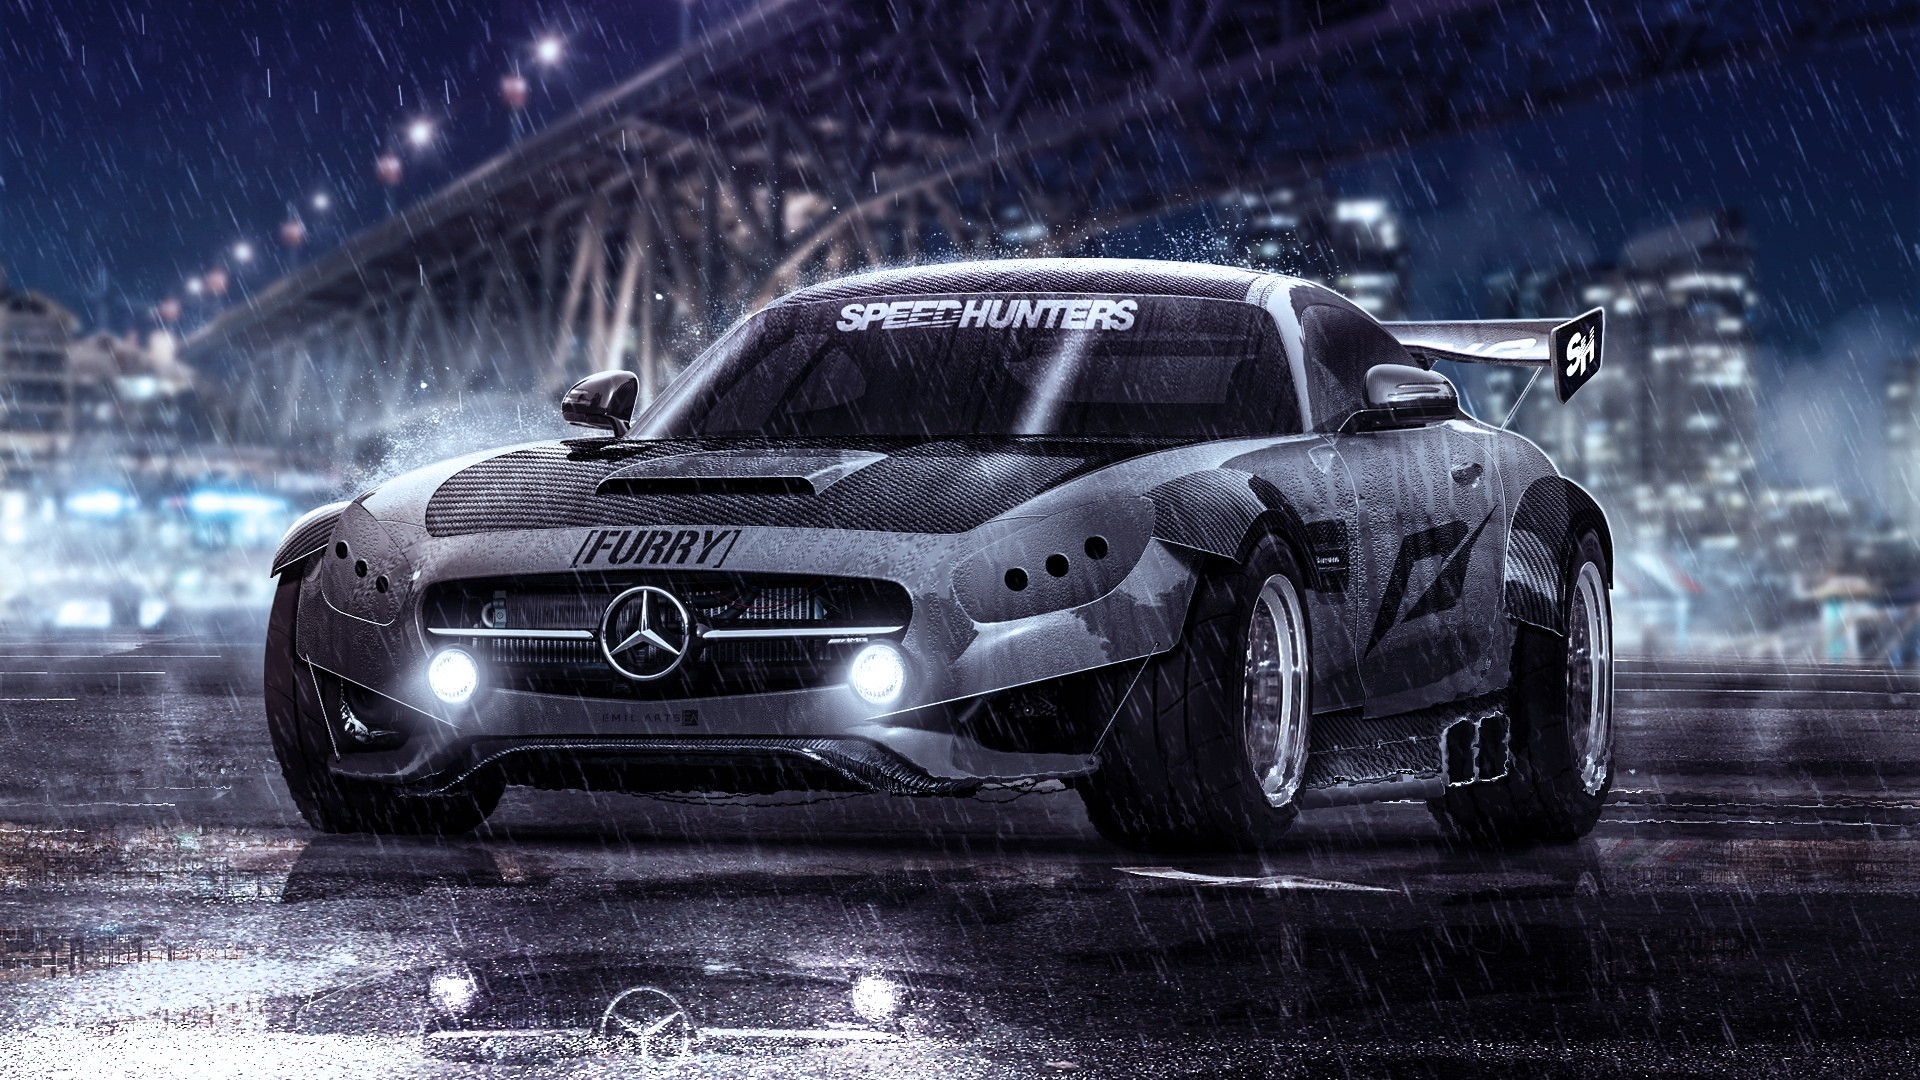 Mercedes SLS speed hunters